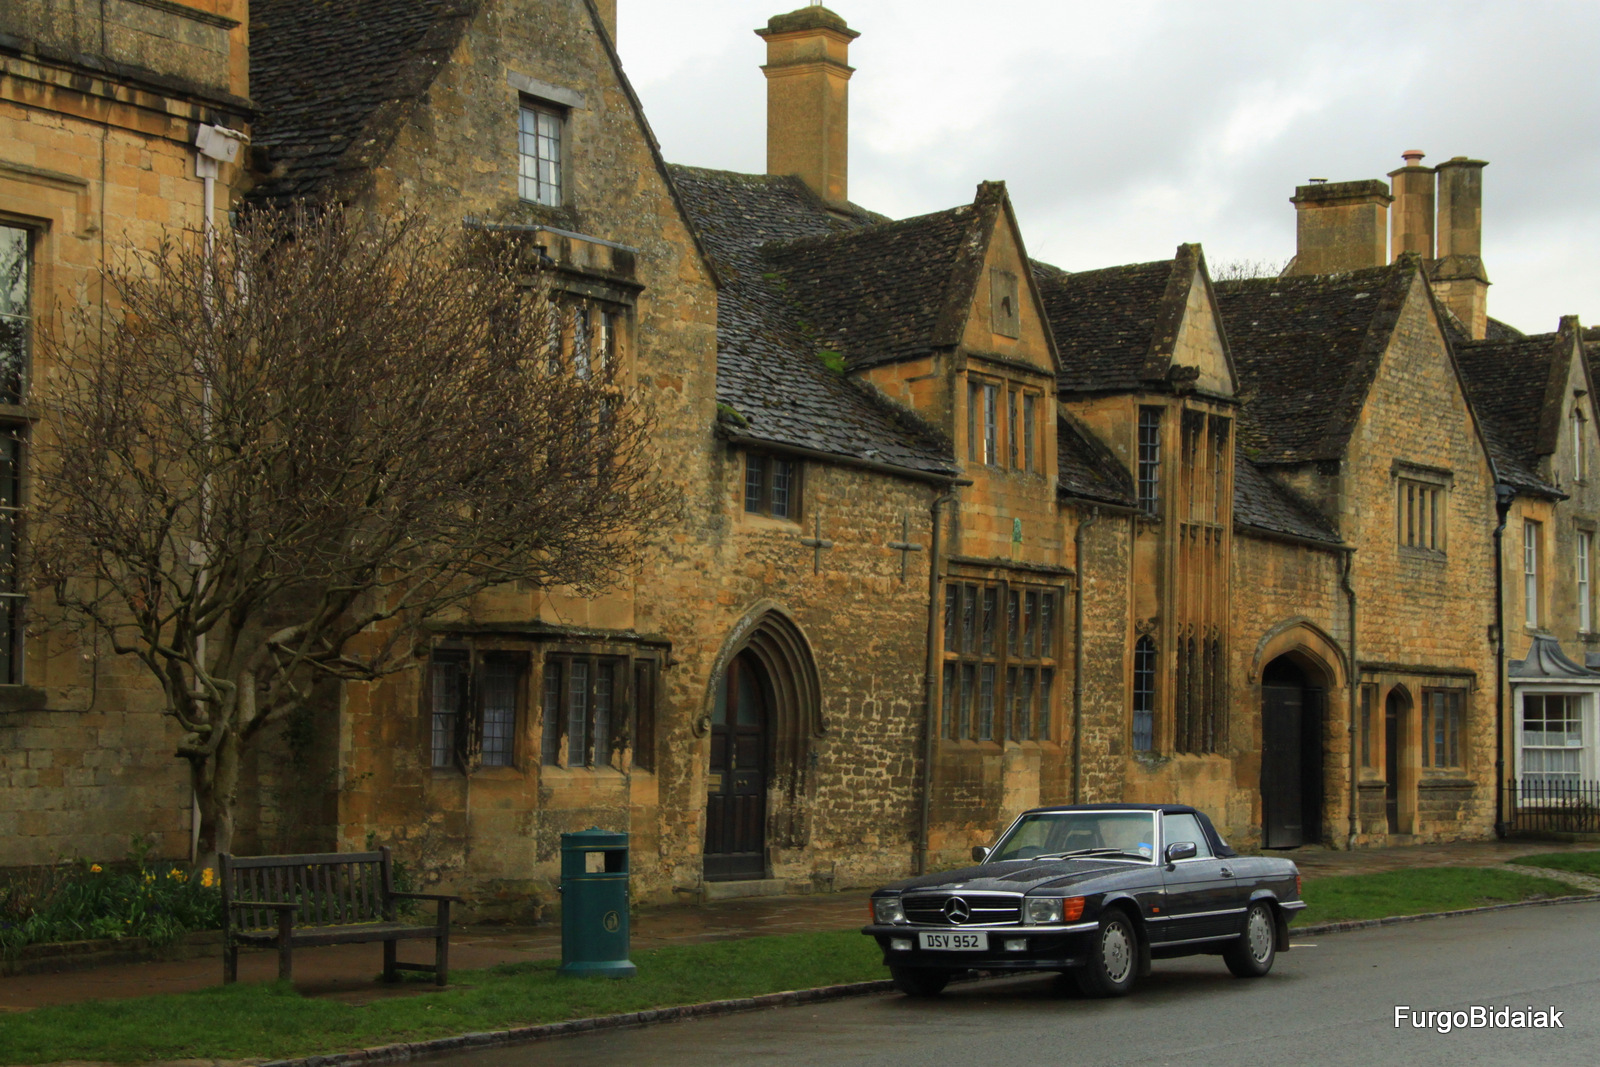 Chipping Campden, Costwolds, Inglaterra en furgo, Furgobidaiak